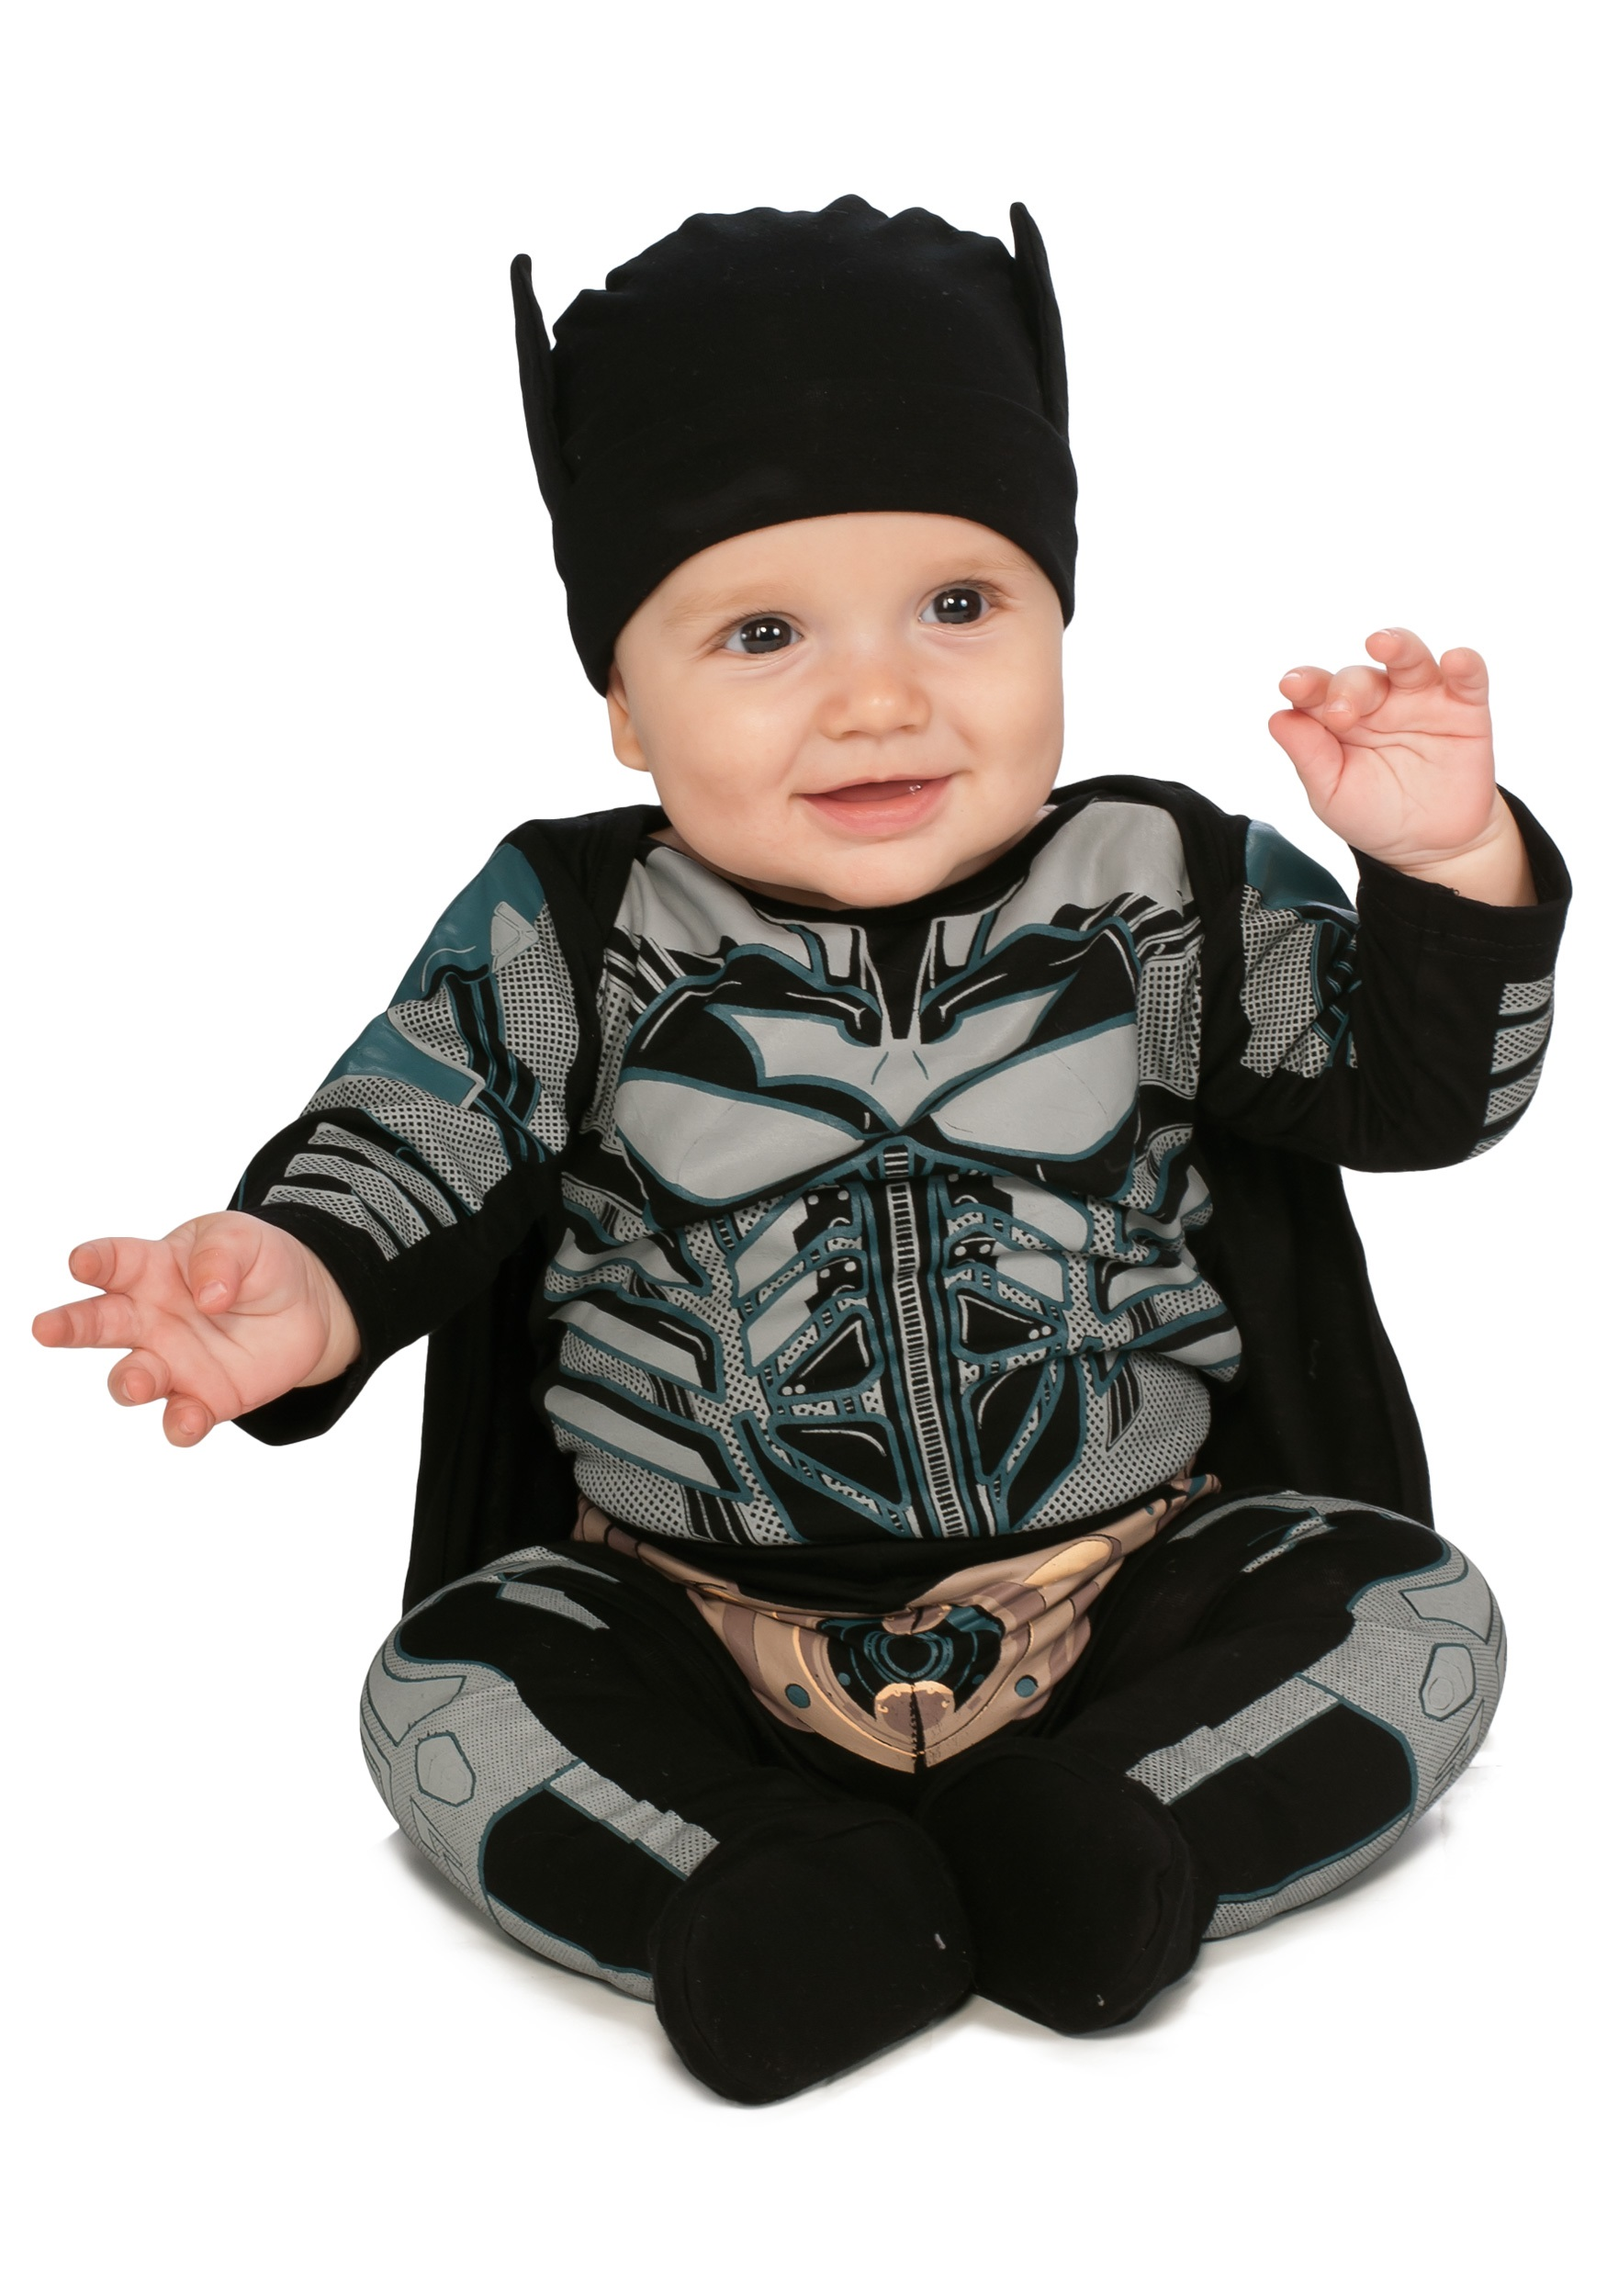 You searched for: batman baby outfit! Etsy is the home to thousands of handmade, vintage, and one-of-a-kind products and gifts related to your search. No matter what you're looking for or where you are in the world, our global marketplace of sellers can help you find unique and affordable options. Let's get started!